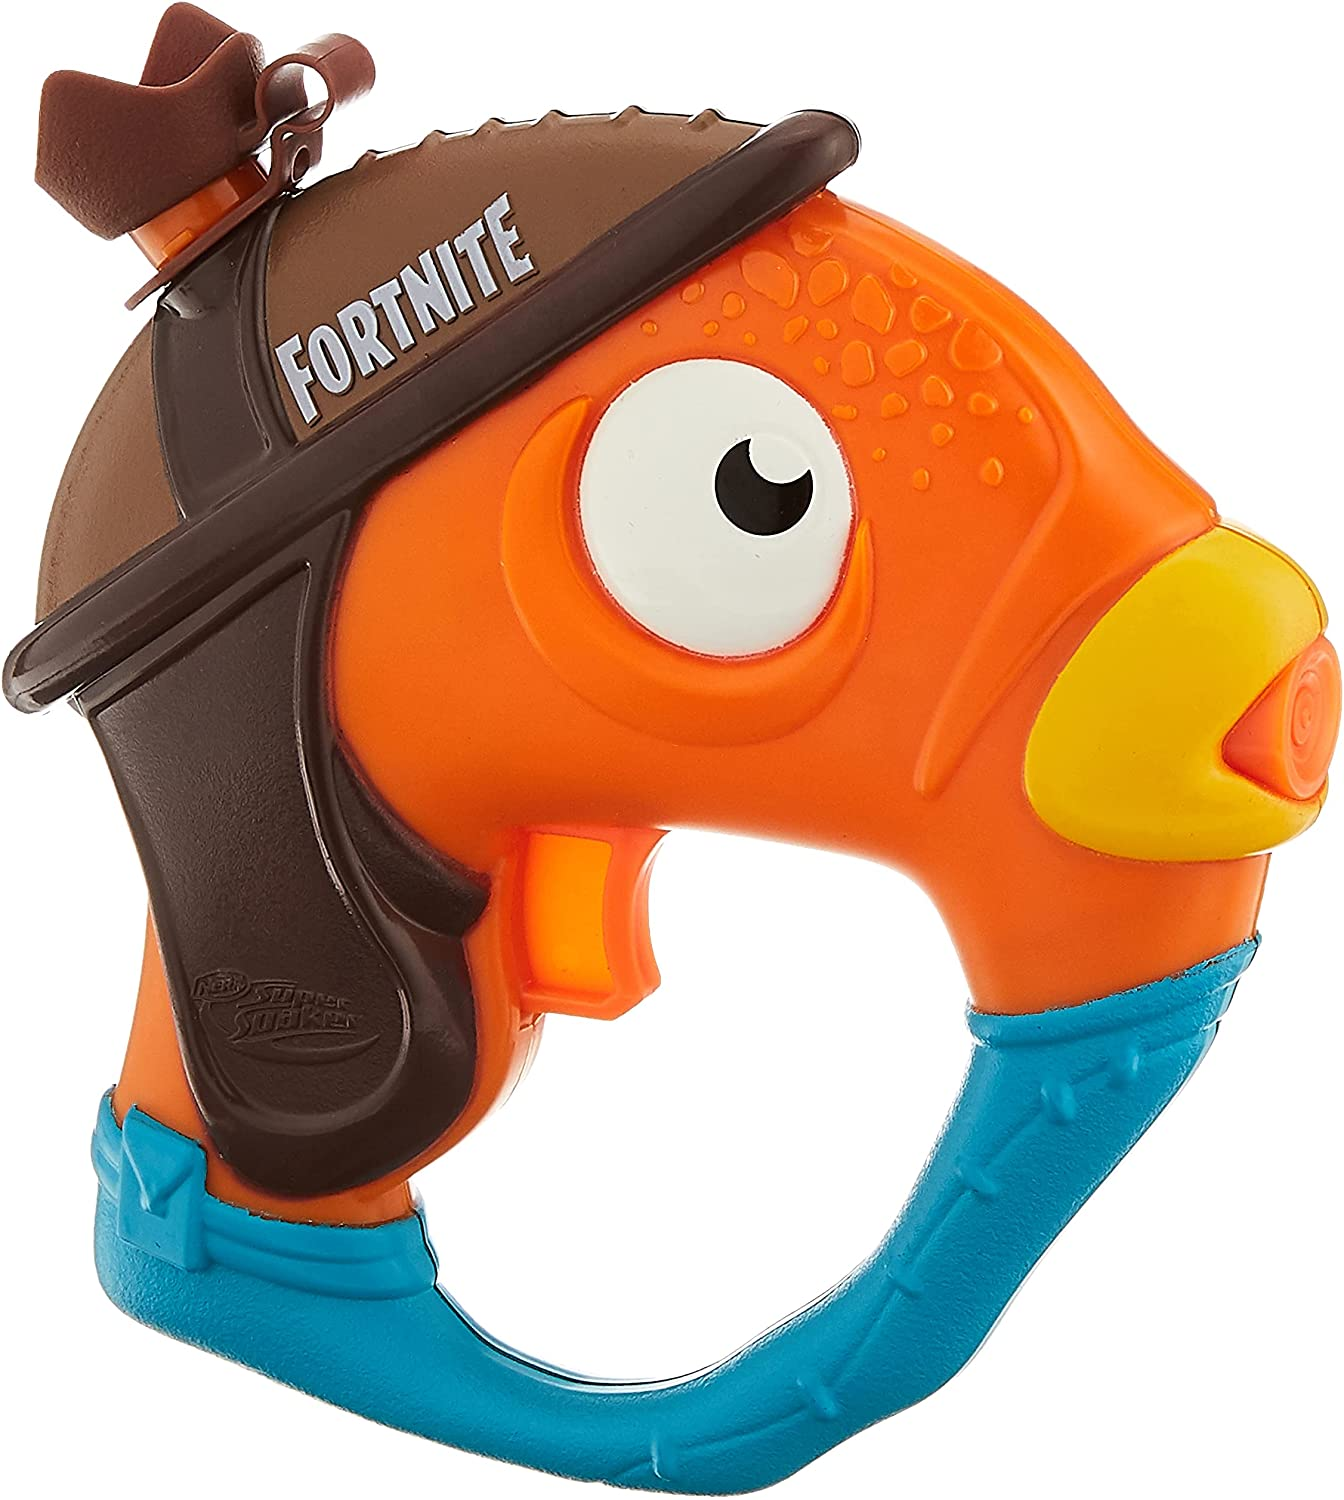 Fortnite Water Gun For Sale Amazon Com Nerf Super Soaker Fortnite Fishstick Water Blaster Fortnite Fishstick Character Design Easy To Carry Micro Size For Kids Youth Adults Toys Games